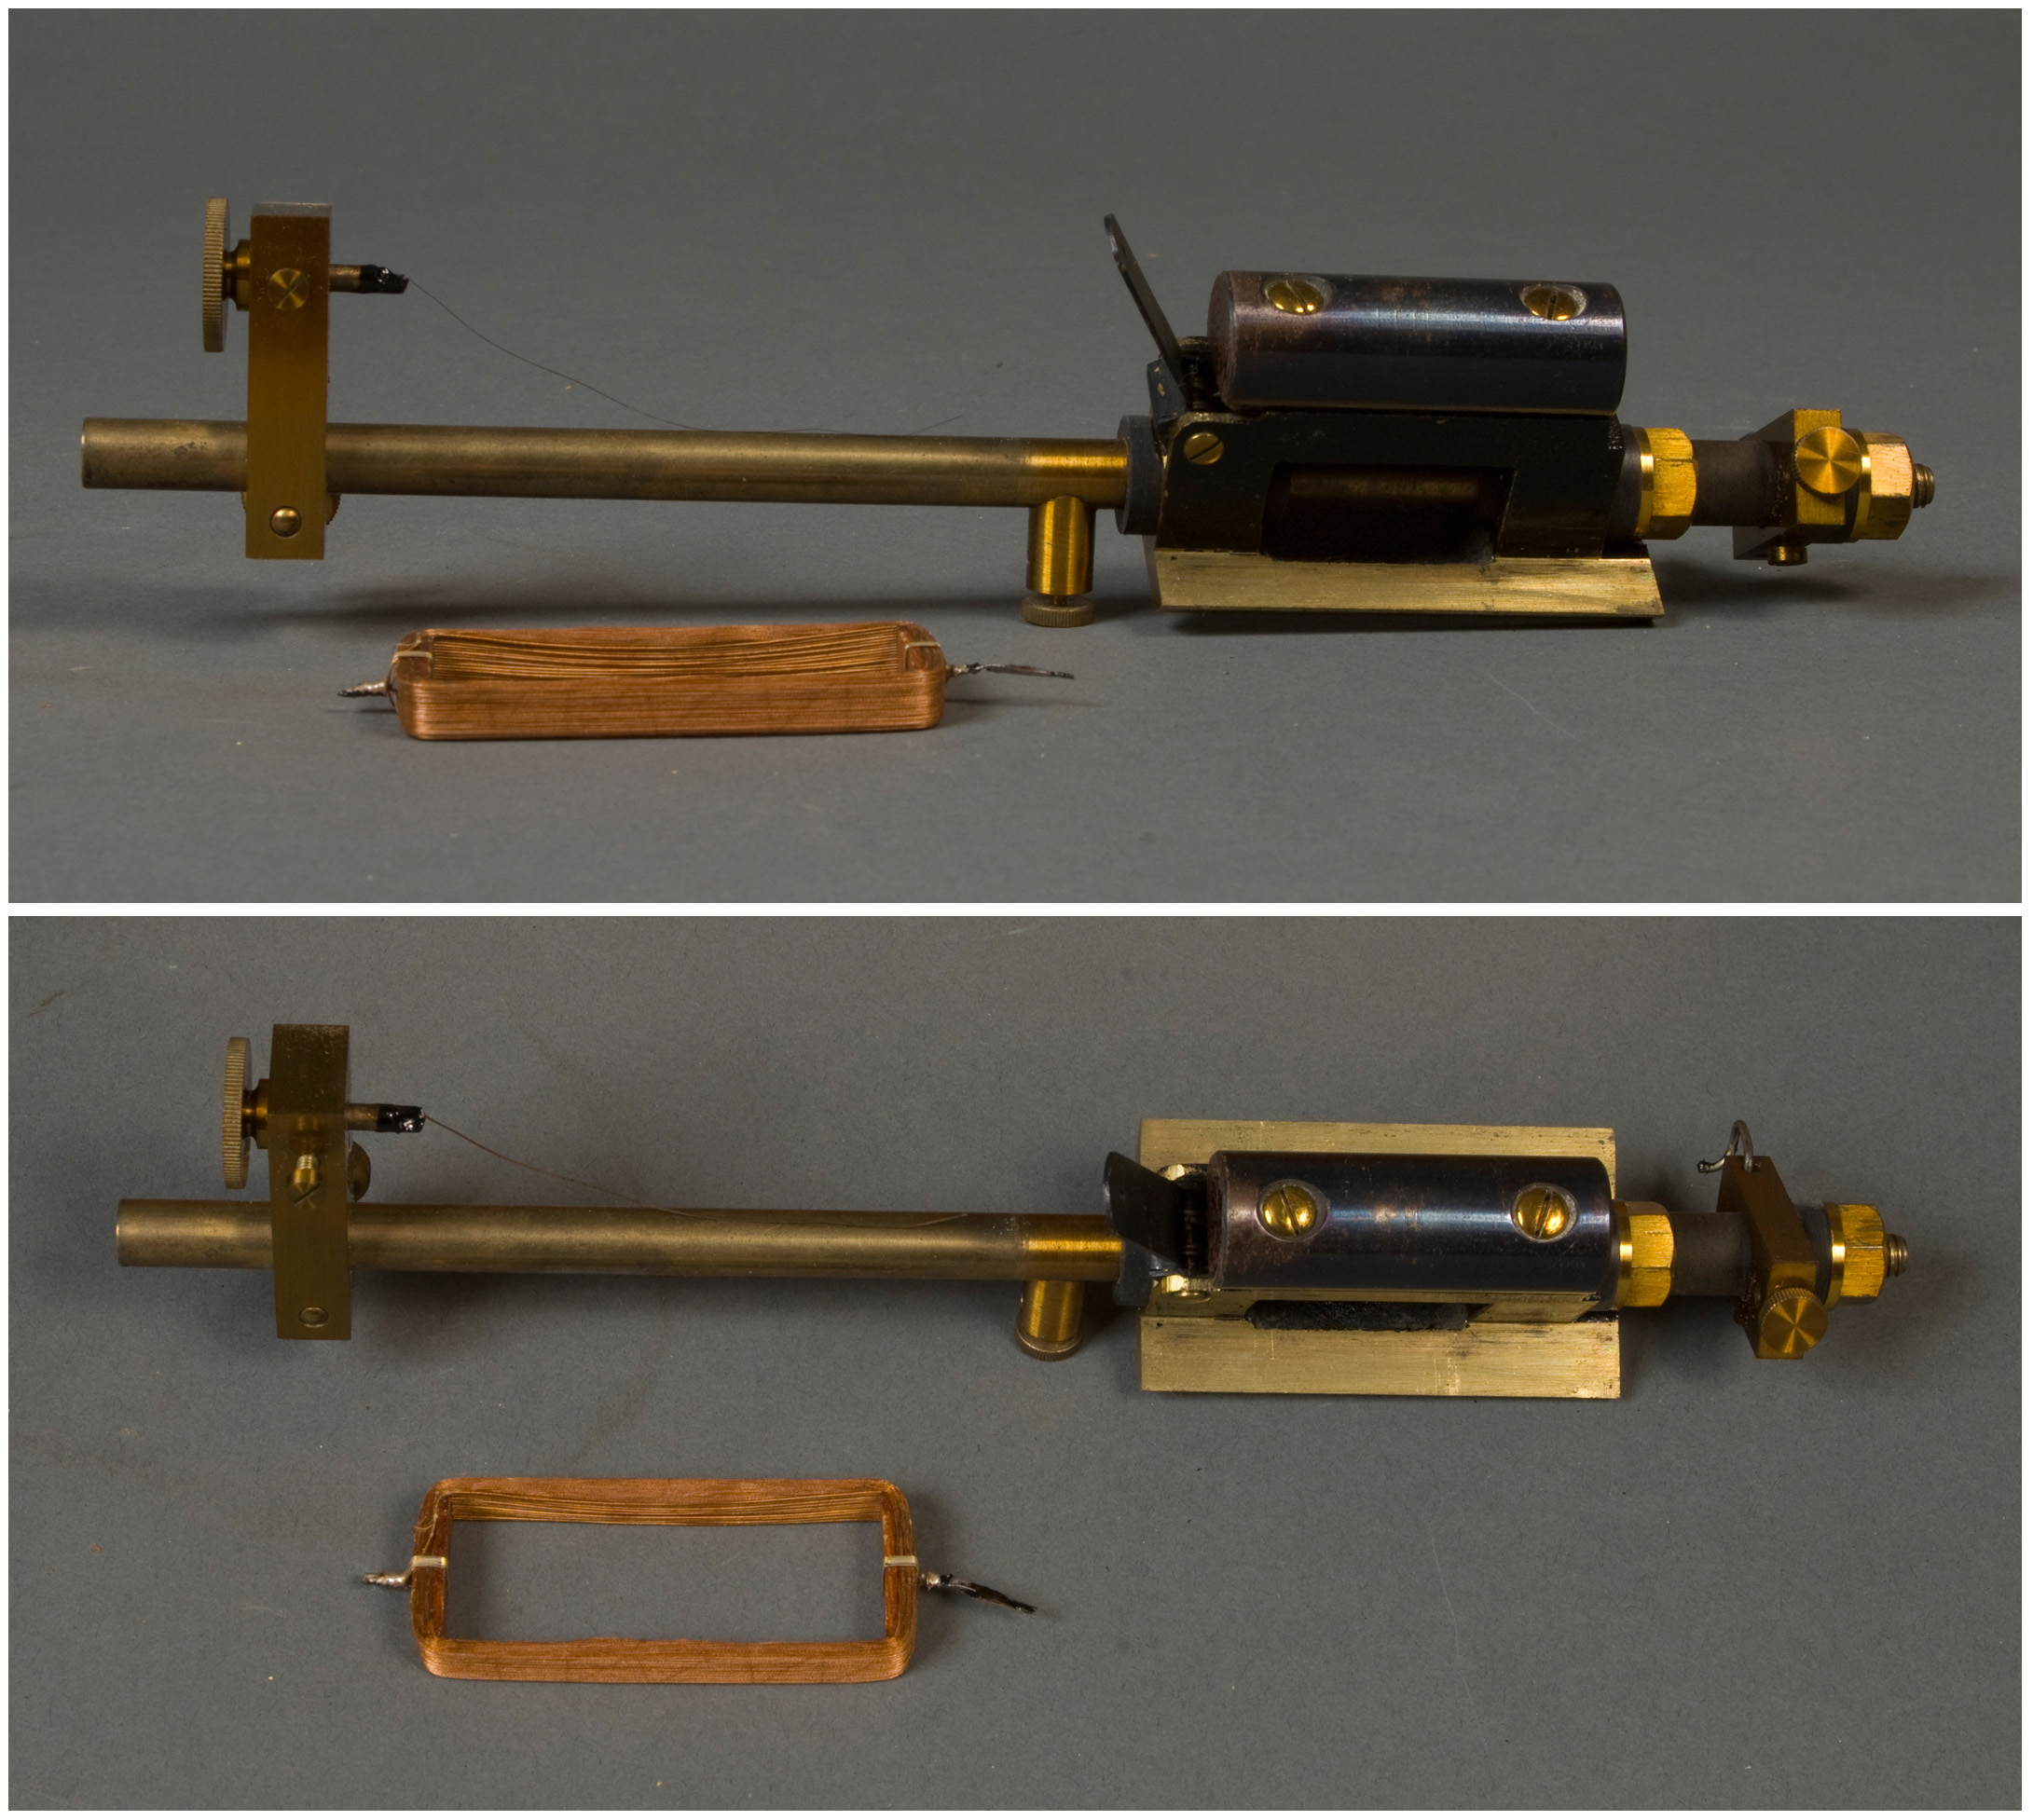 A brass rod with a back box mounted to a brass plate on one end and a thin brass plate stuck perpendicularly to the rod on the other. There is a lever on the black box and an unattached rectangular coil of copper wire resting next to the device.